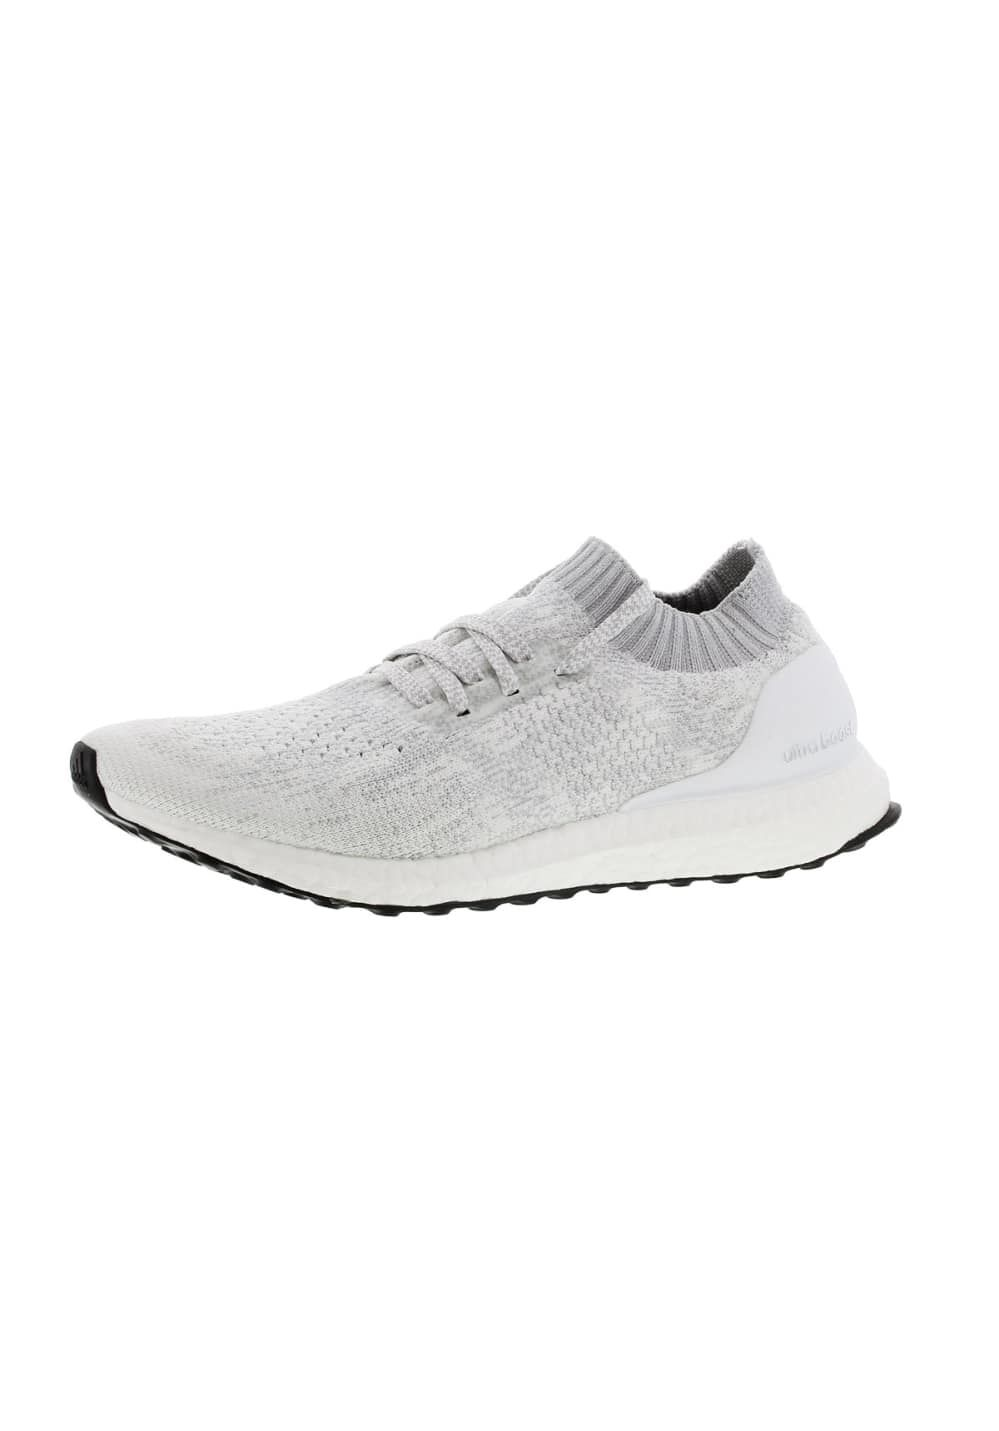 adidas Ultra Boost Uncaged - Chaussures running pour Homme - Blanc ...